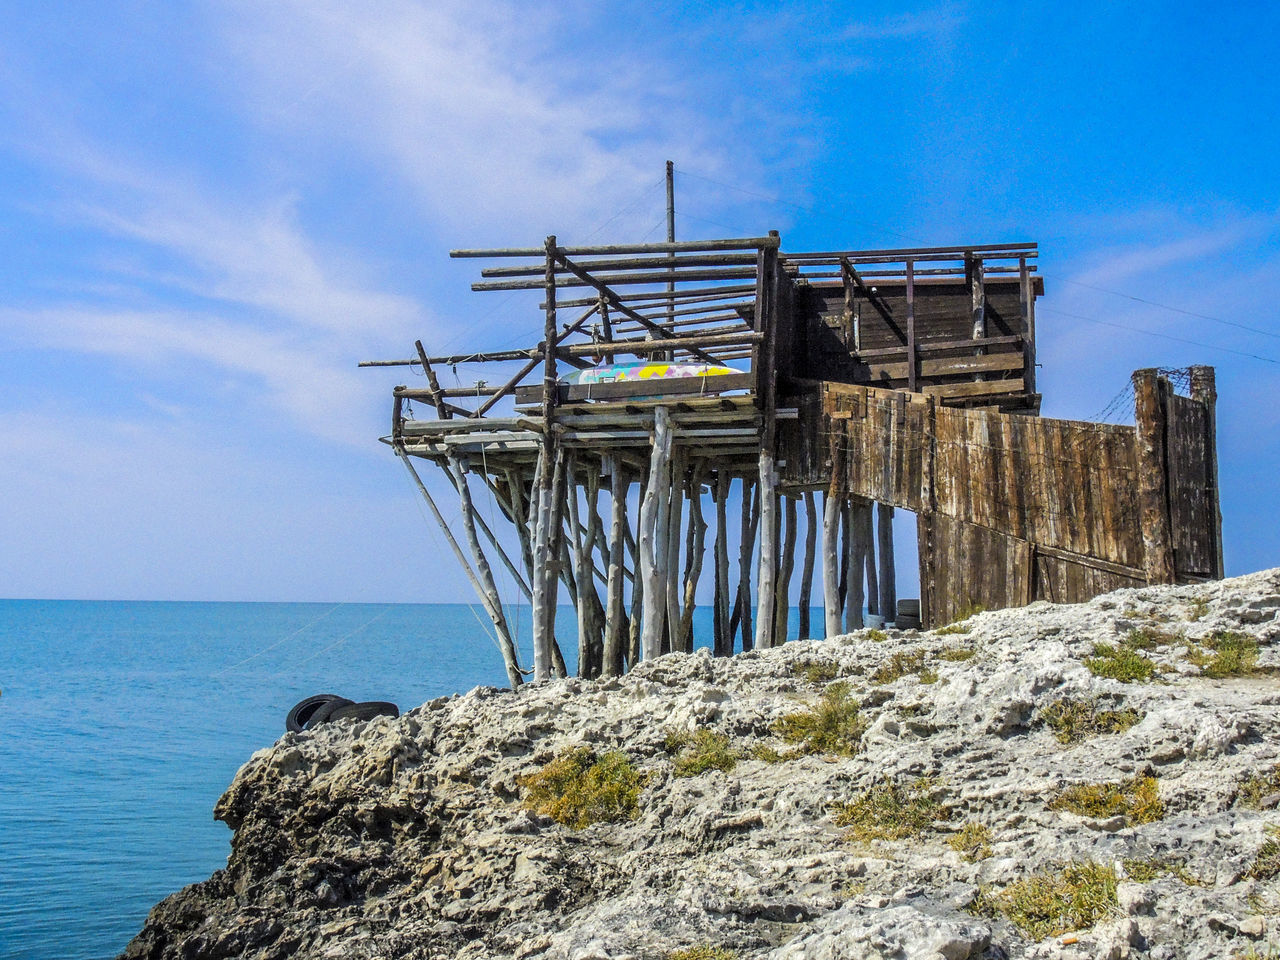 Built Structure By Sea Against Blue Sky